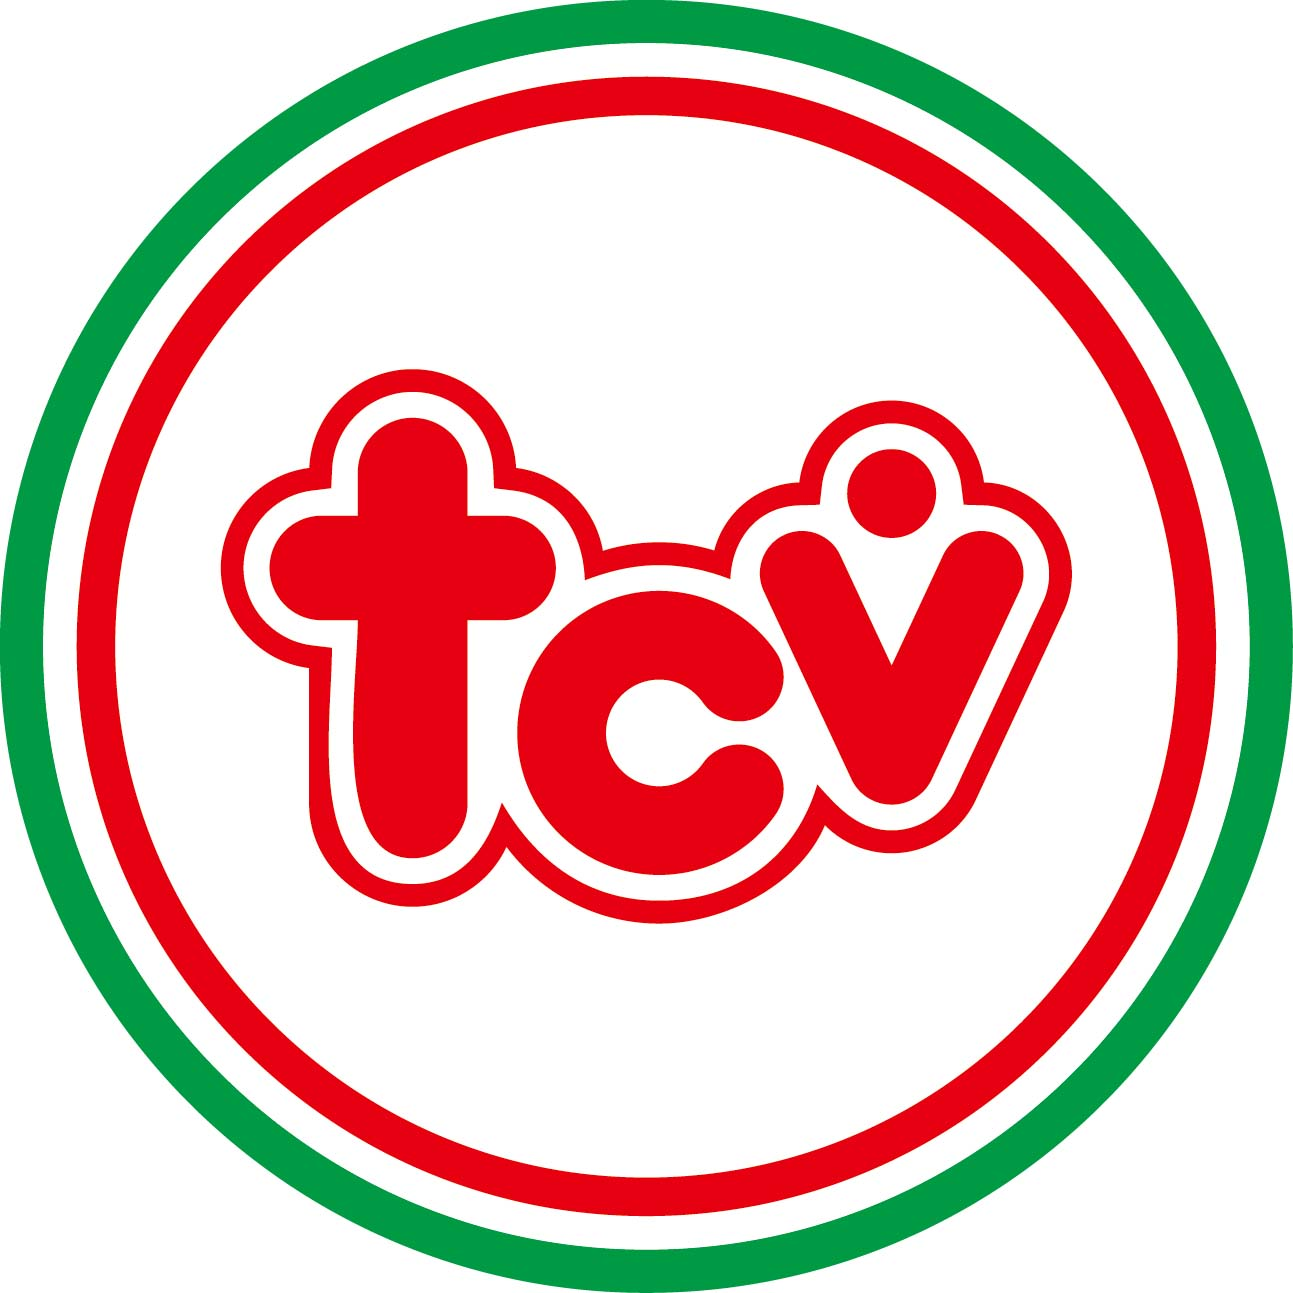 TCV INDUSTRIAL CO., LTD.-Logo